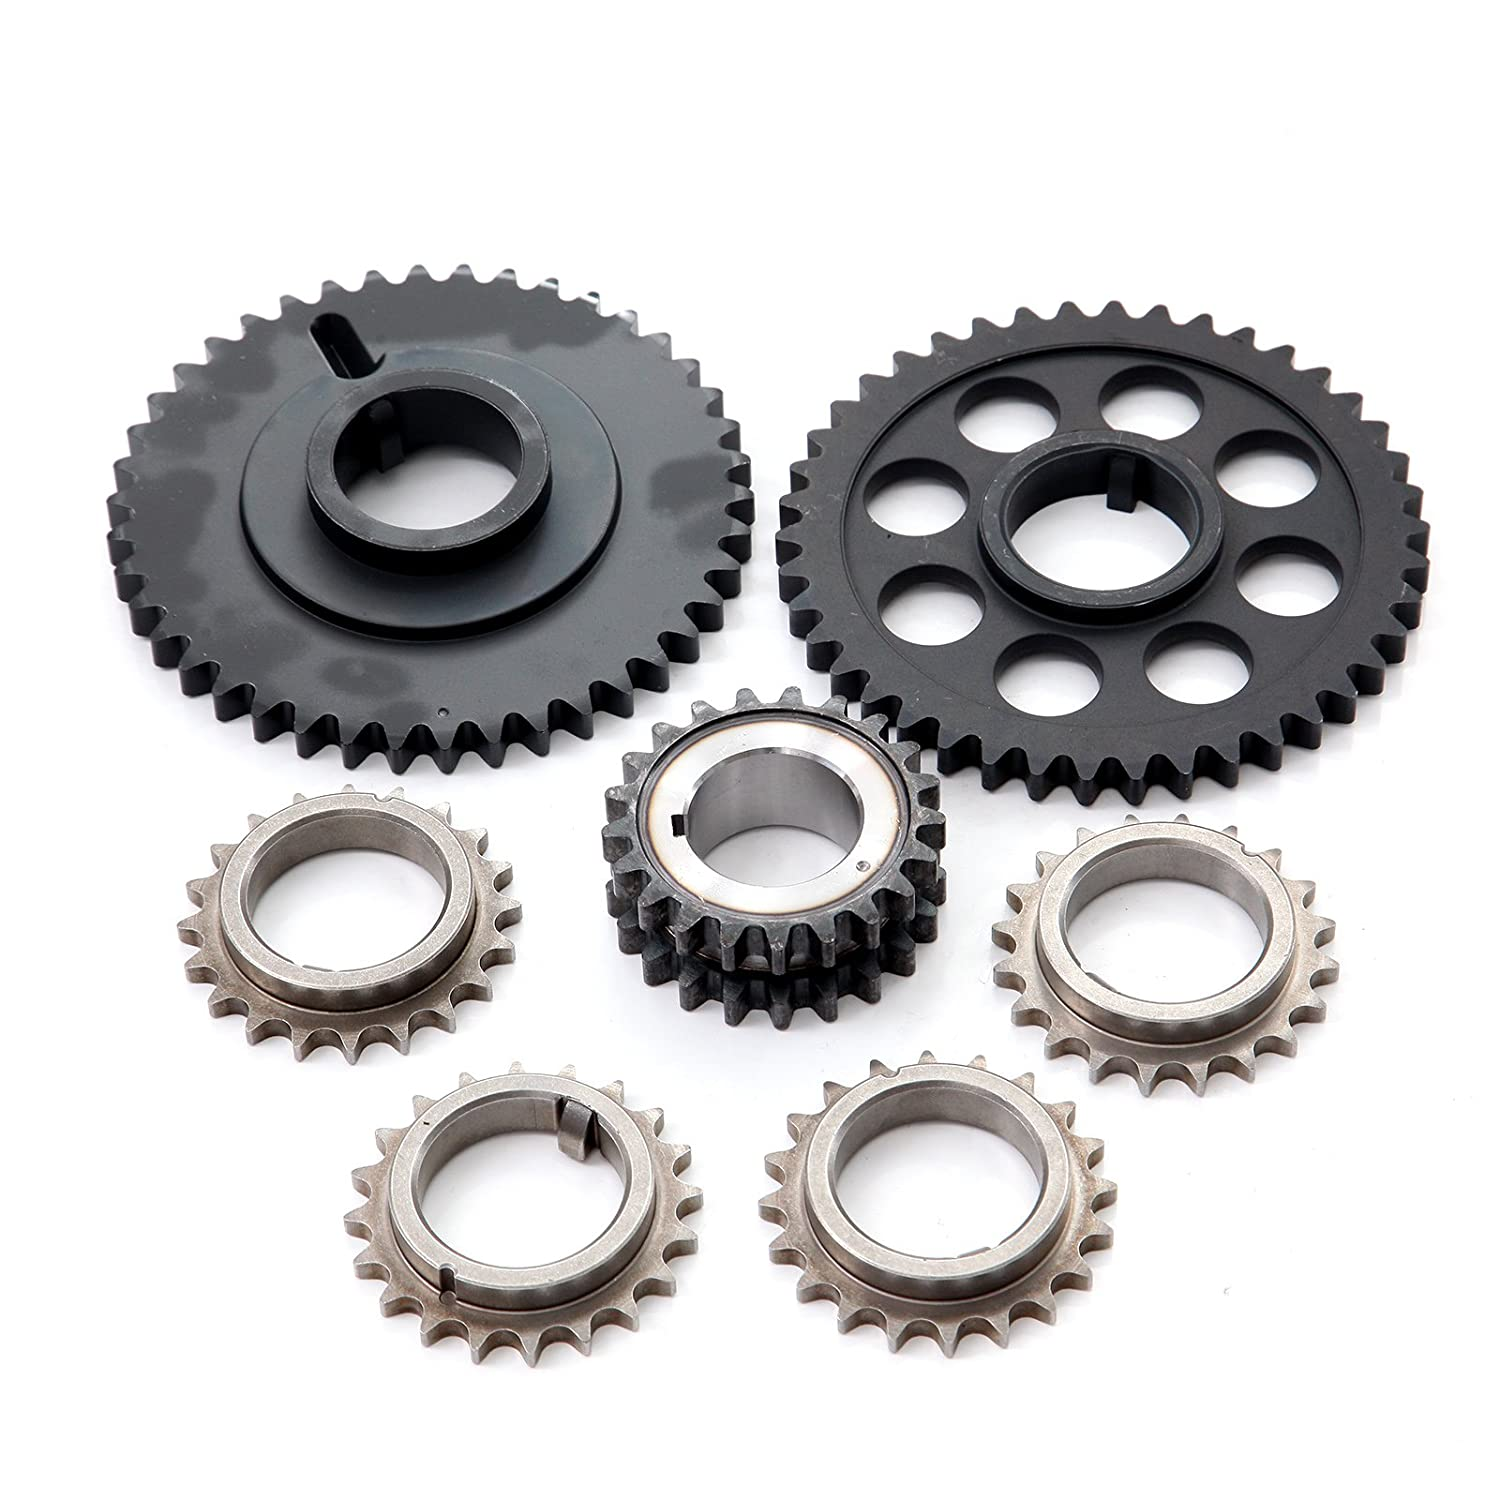 ECCPP 3-387SF Timing Chain Kits Fits with Tensioner 1998 1999 Ford Mustang 1998-2000 Lincoln Continental 1998 Lincoln Mark VIII 053962-5211-1728281